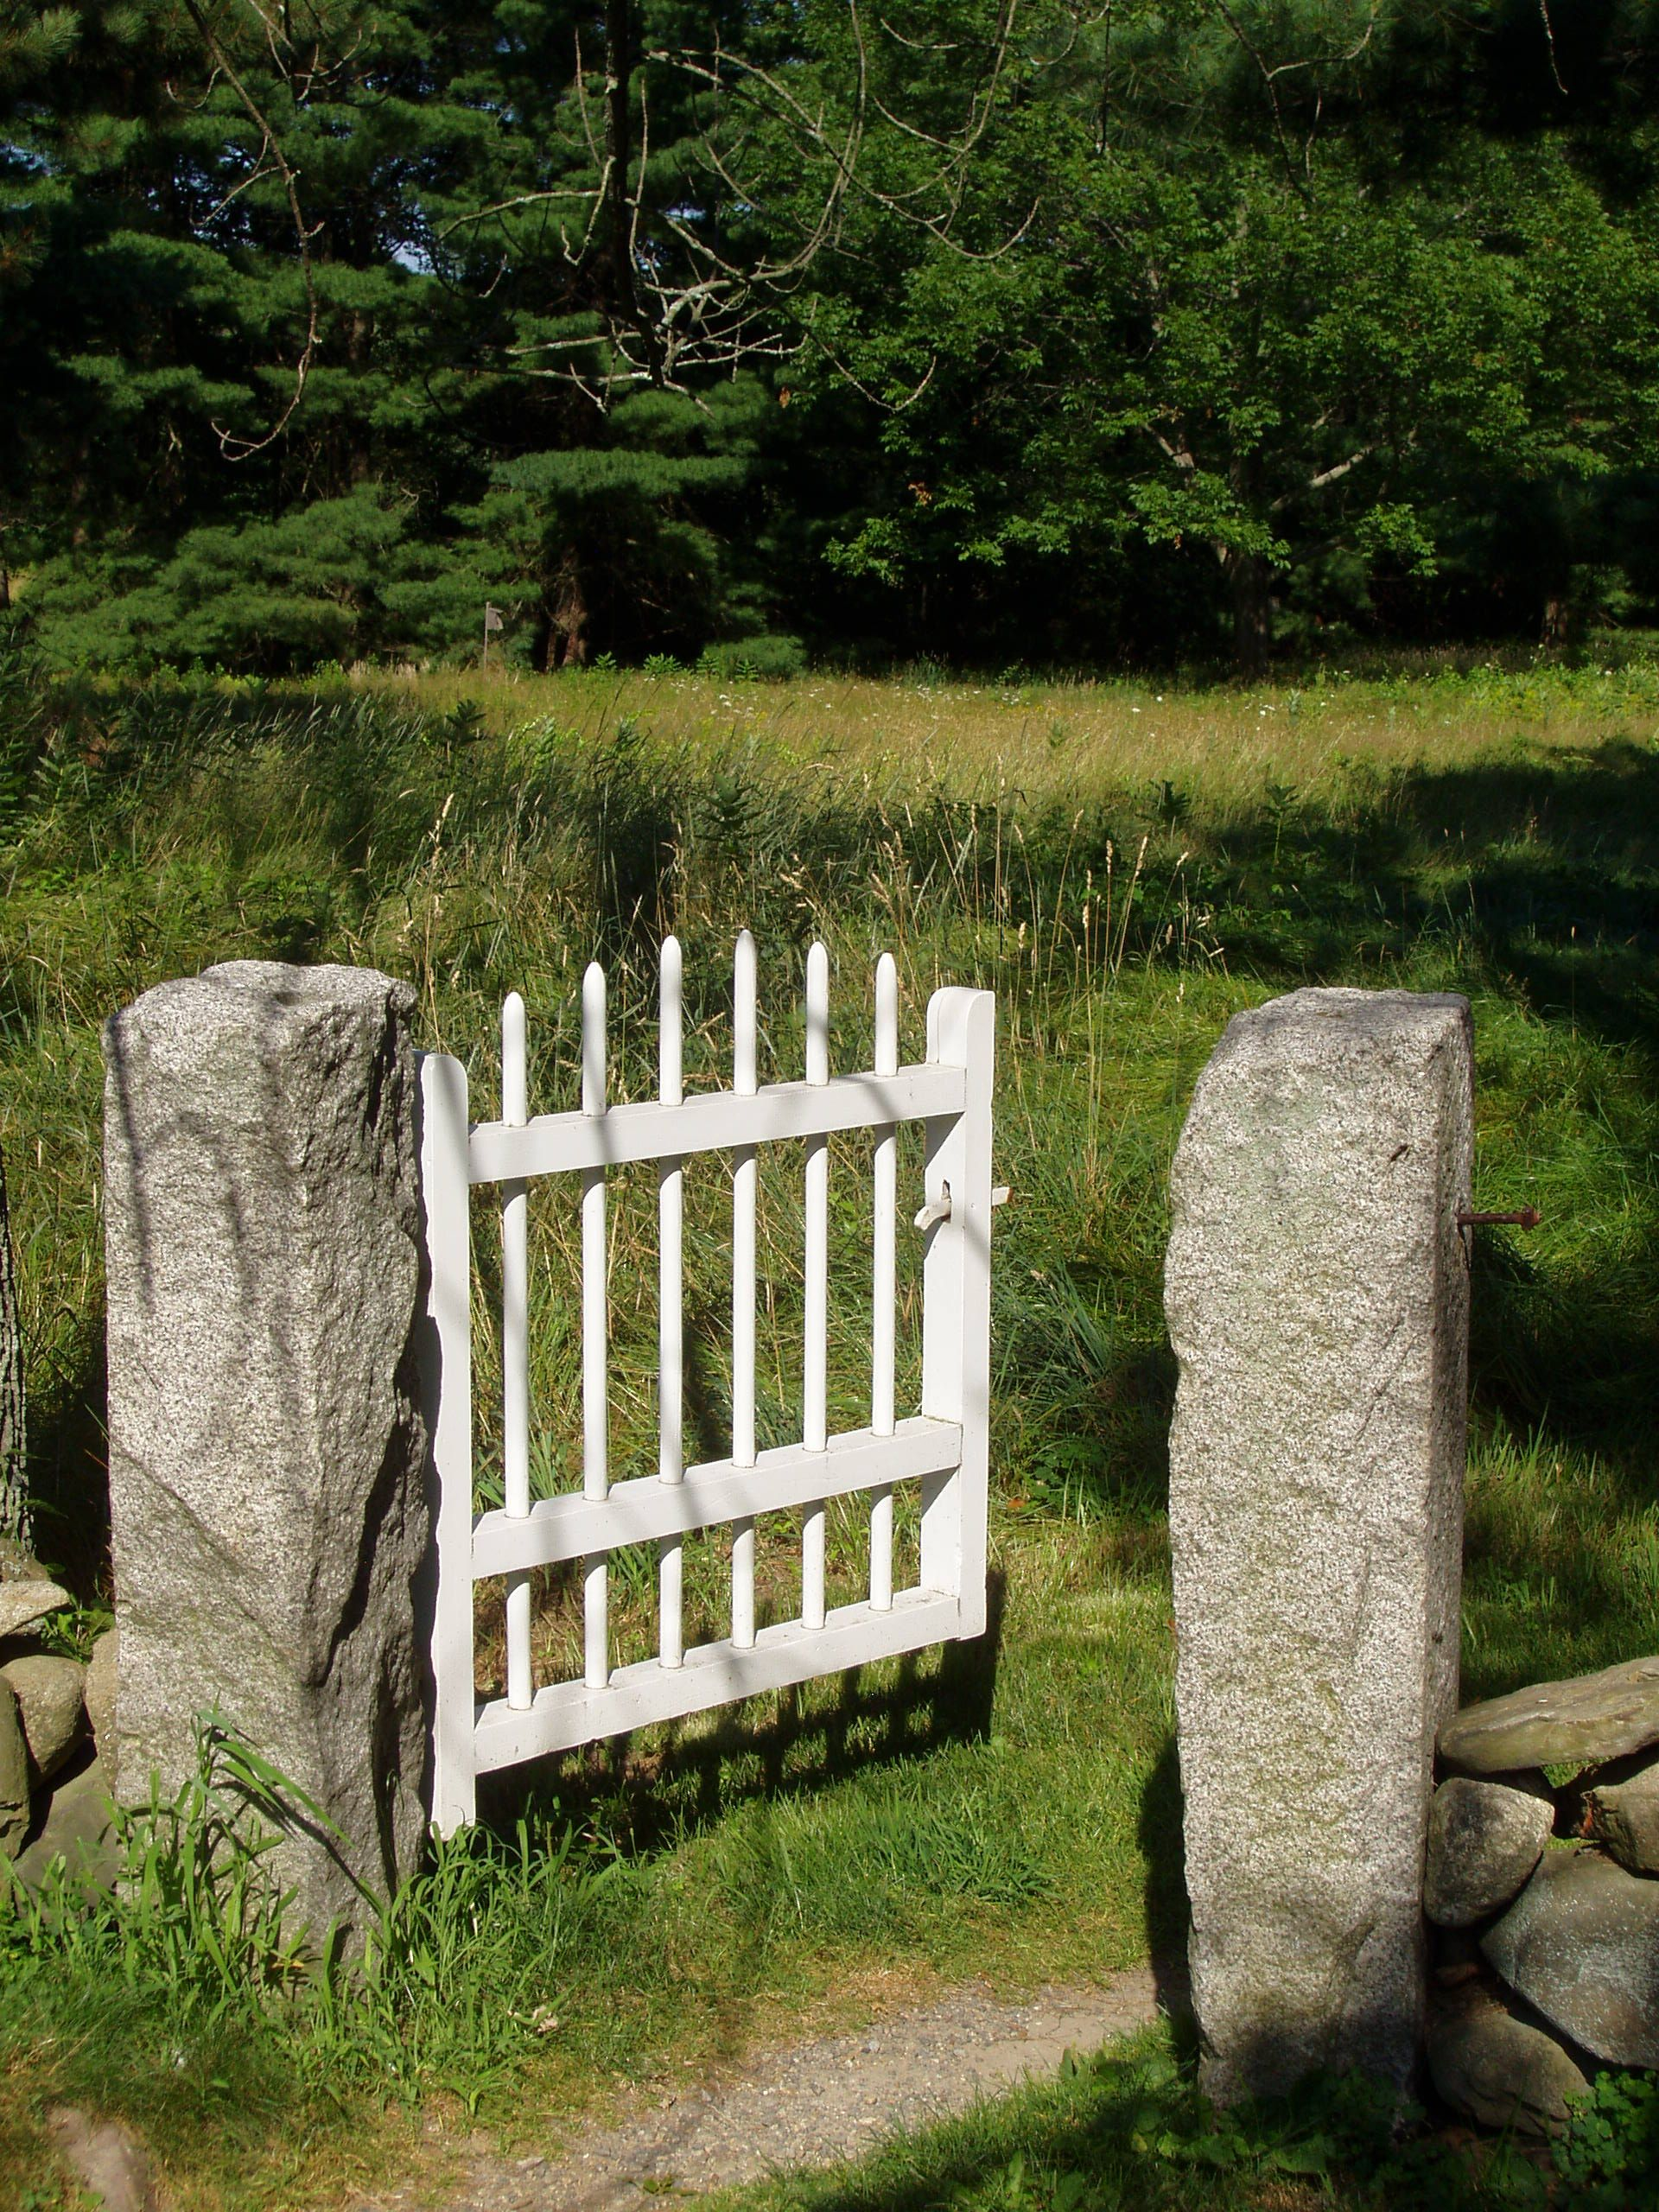 The Granite Posts Add Heft And Permanence, But If I Use This Idea At The  Entrance To The Gravel Garden, It Would Lock The Design In Place      Couldnu0027t Move ...